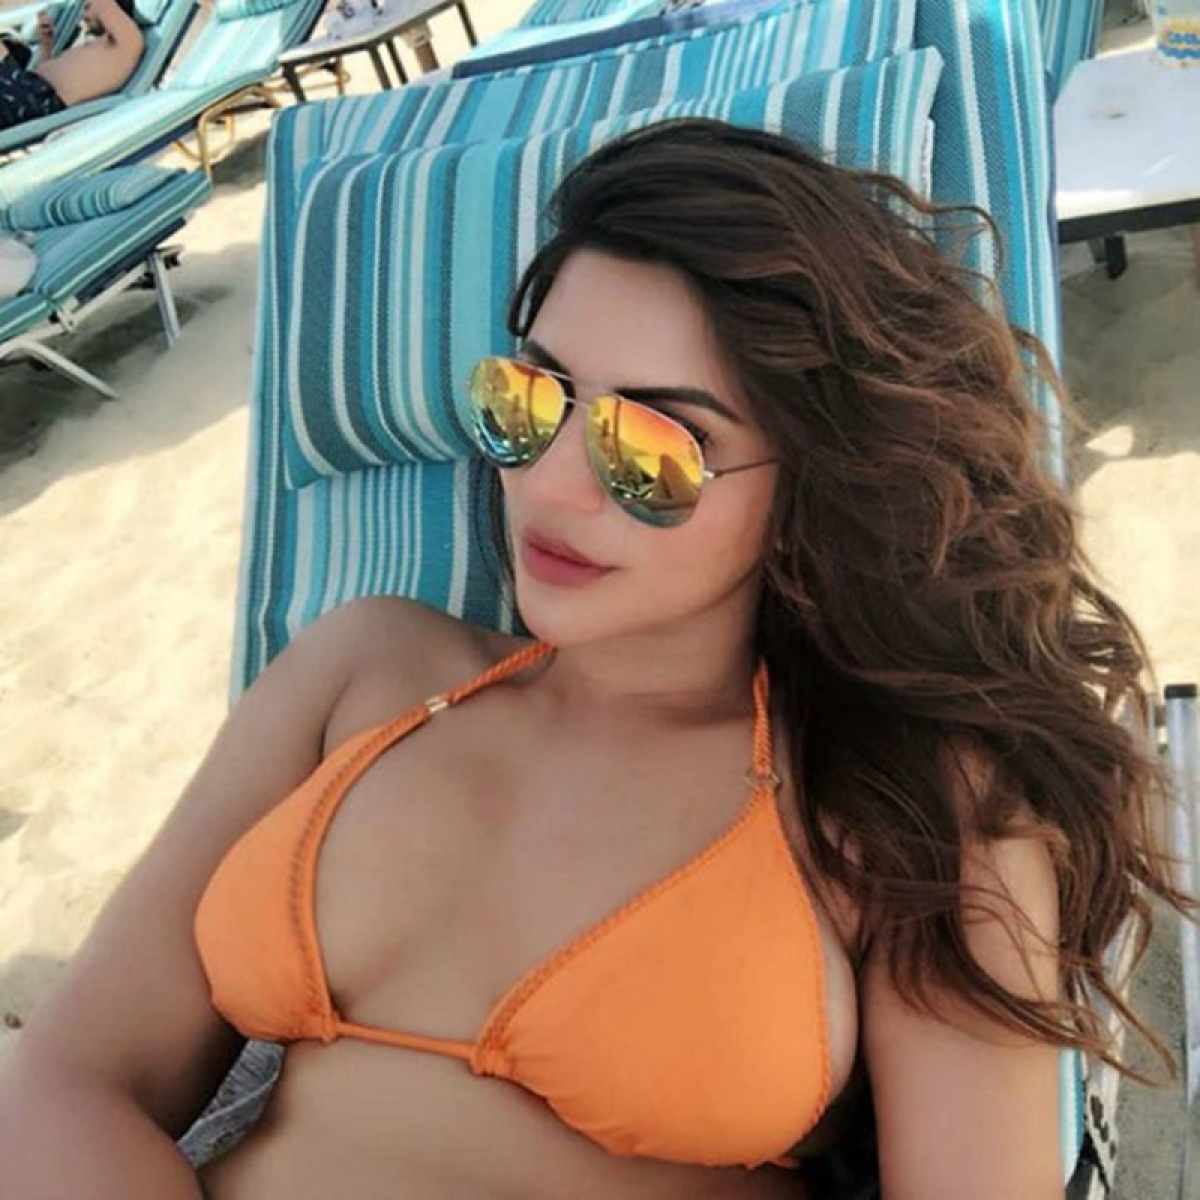 Oh-La-La! Shama Sikander again spreads hotness on the internet with her latest gorgeous bikini pics